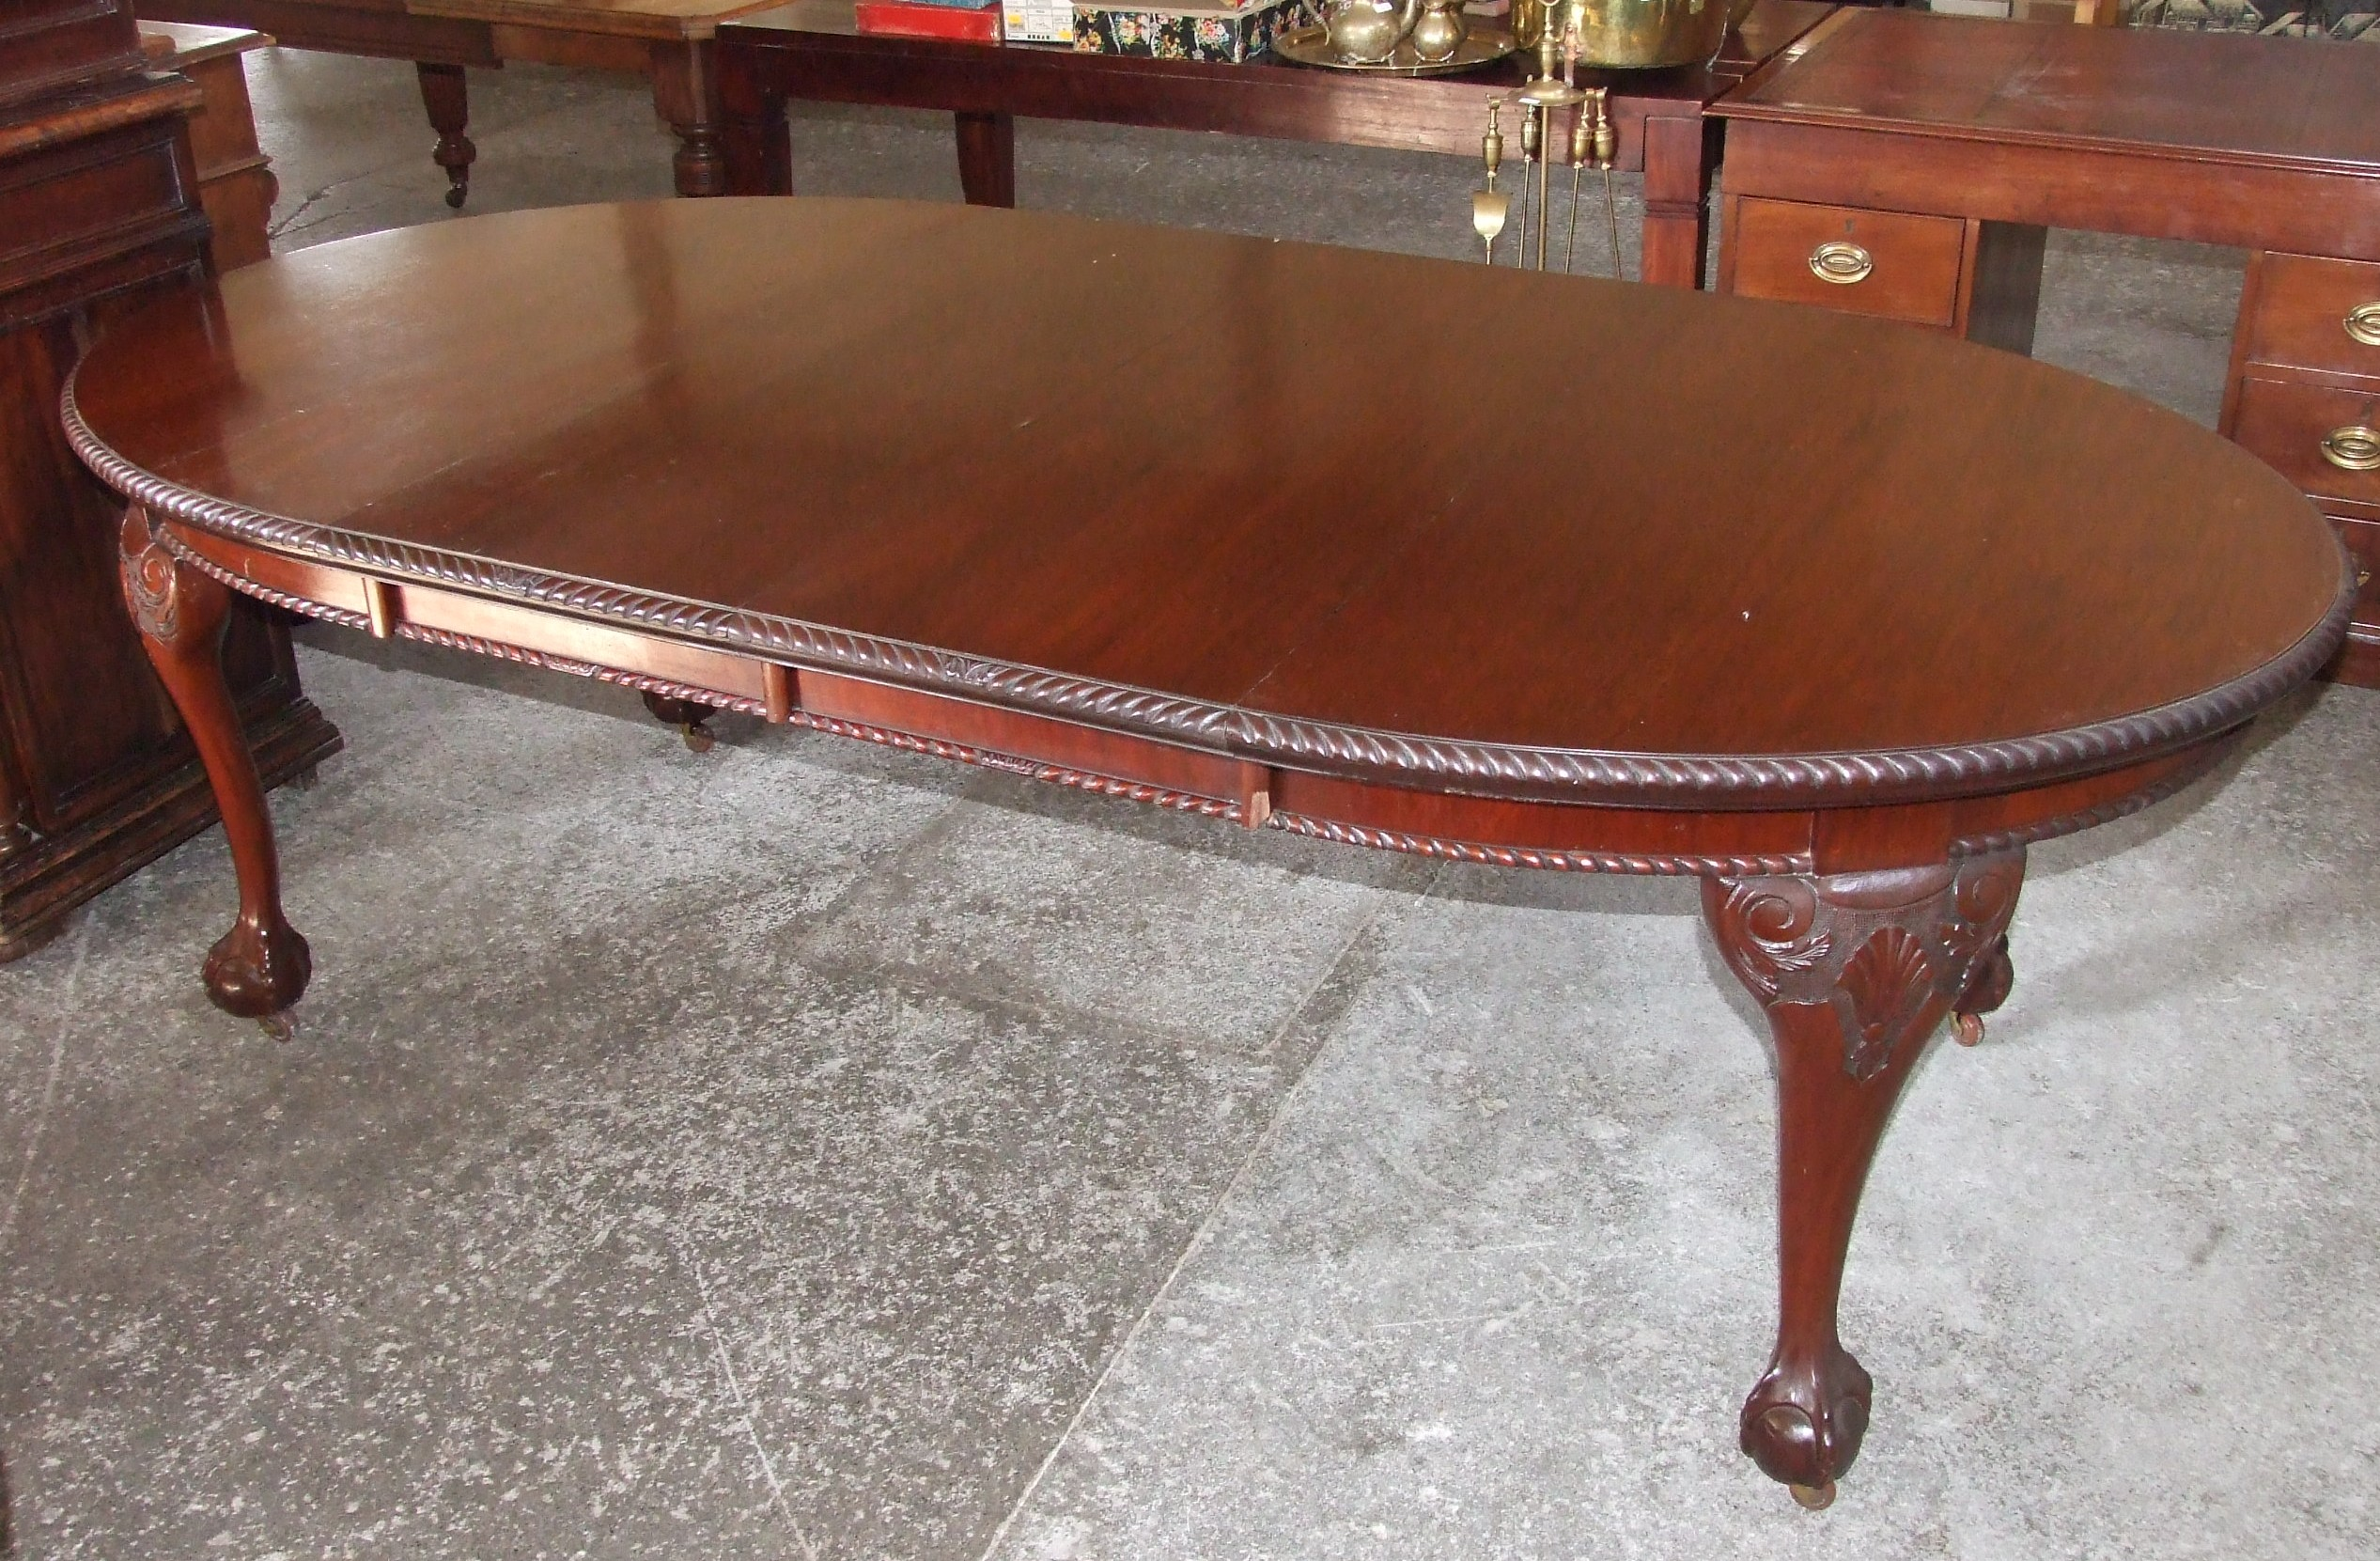 Edwardian Mahogany Oval Extending Dining Table with 2 leaves